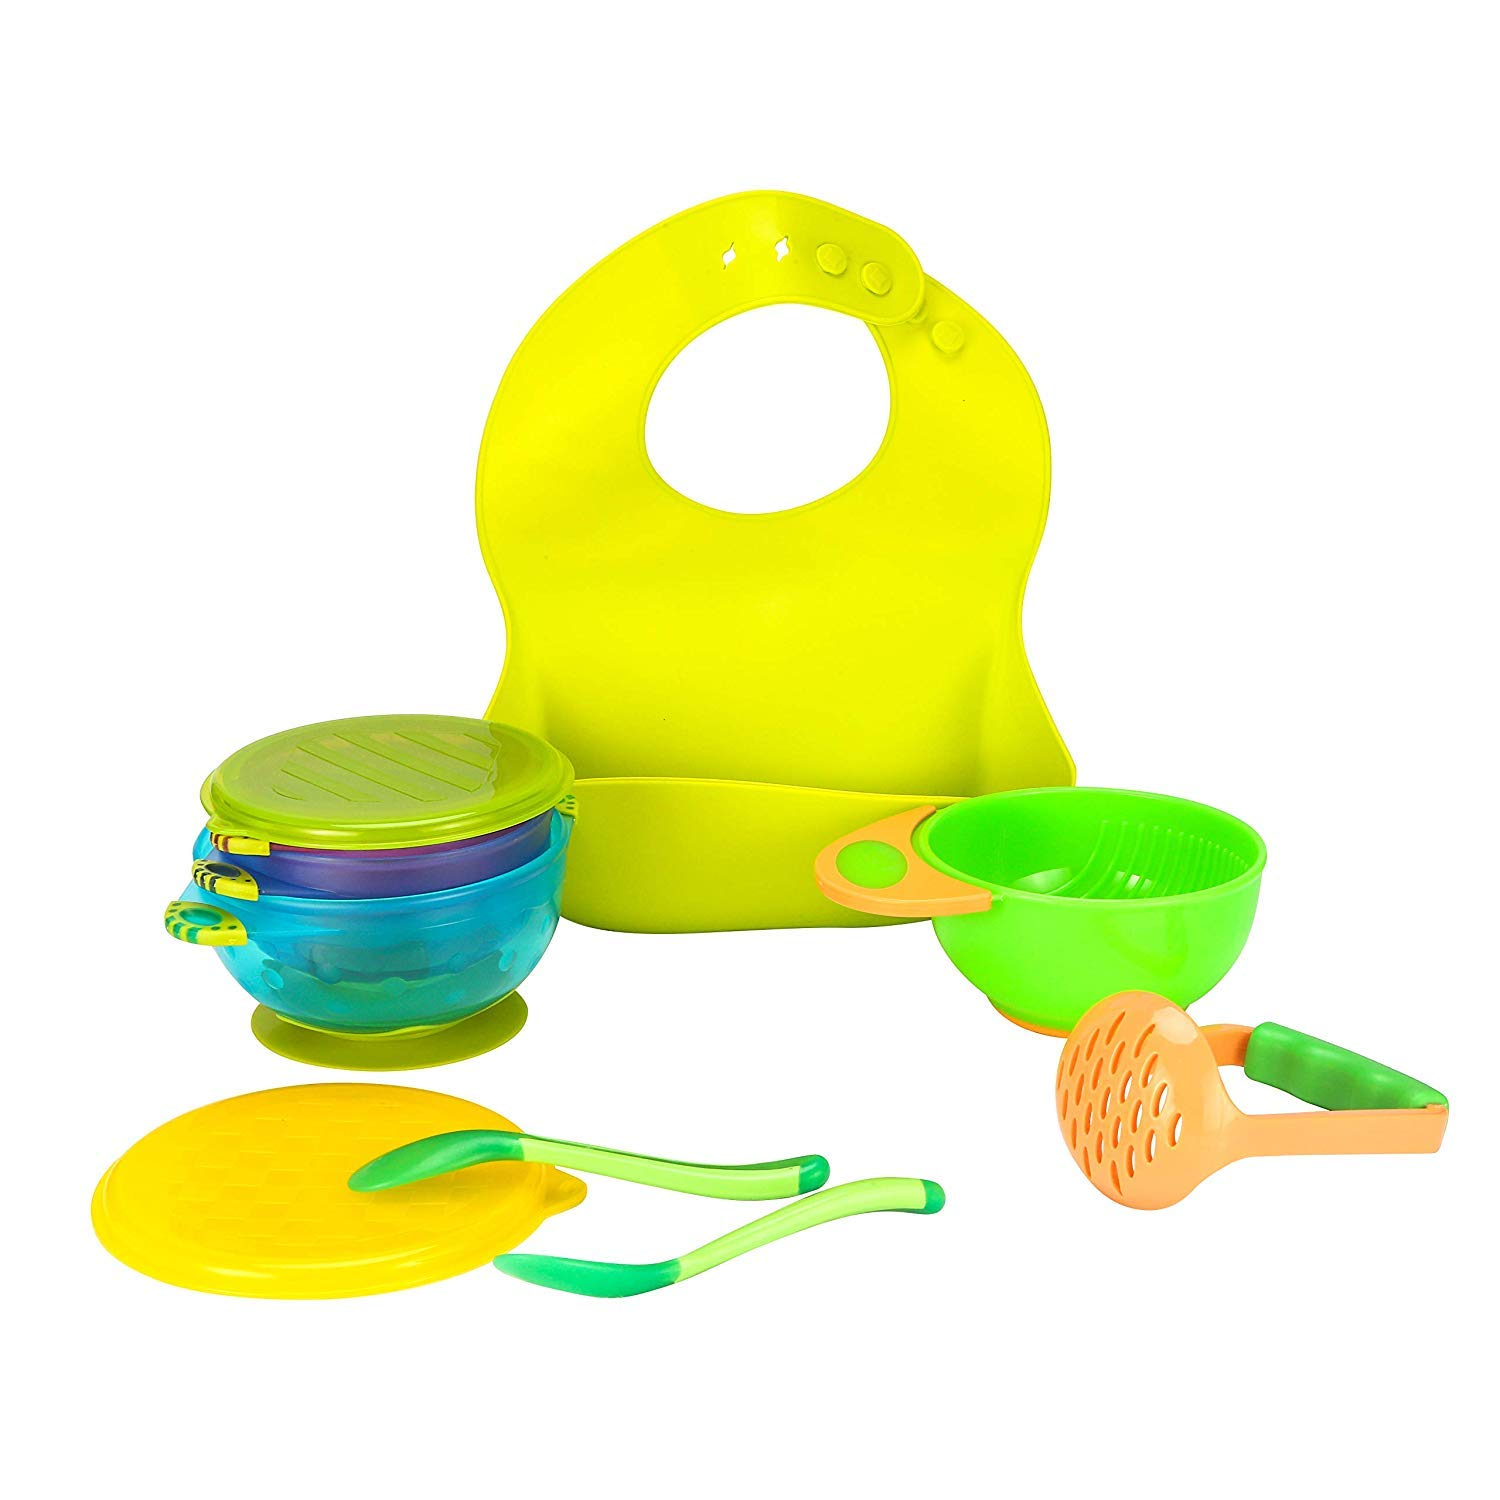 Baby Feeding Set 8 PCS Silicone Bib Mash Bowl Heat Sensitive Spoons Suction Bowl Gifts for New Born Green